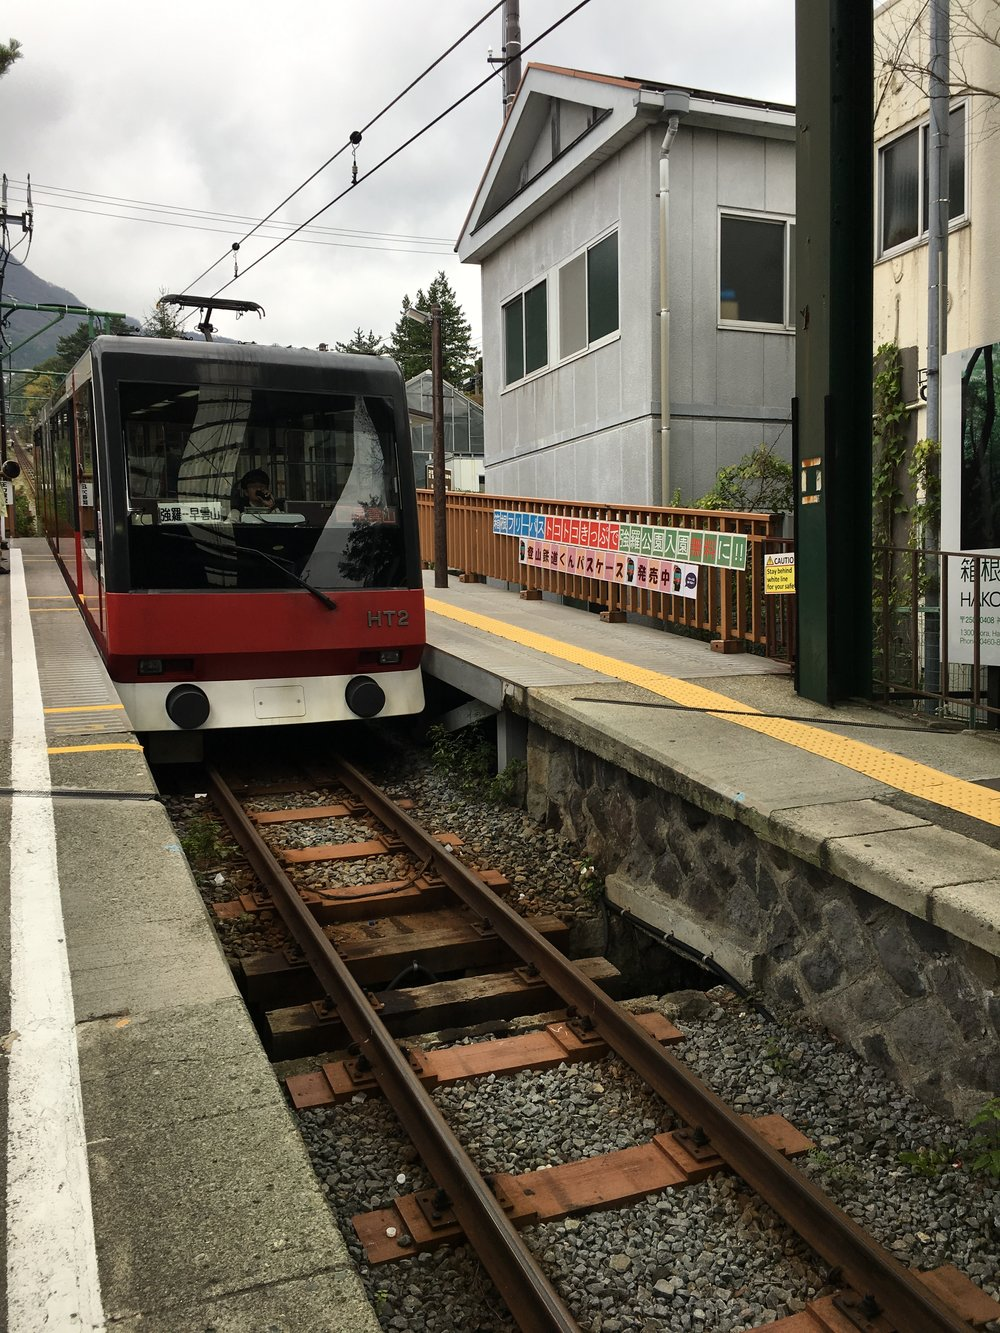 After checking out of Setsugetsuka hotel, I walked a few minutes to Gora Station in order to ride the Hakone Tozan Cable Car. A board sign of Gora Station photo shown   here  .